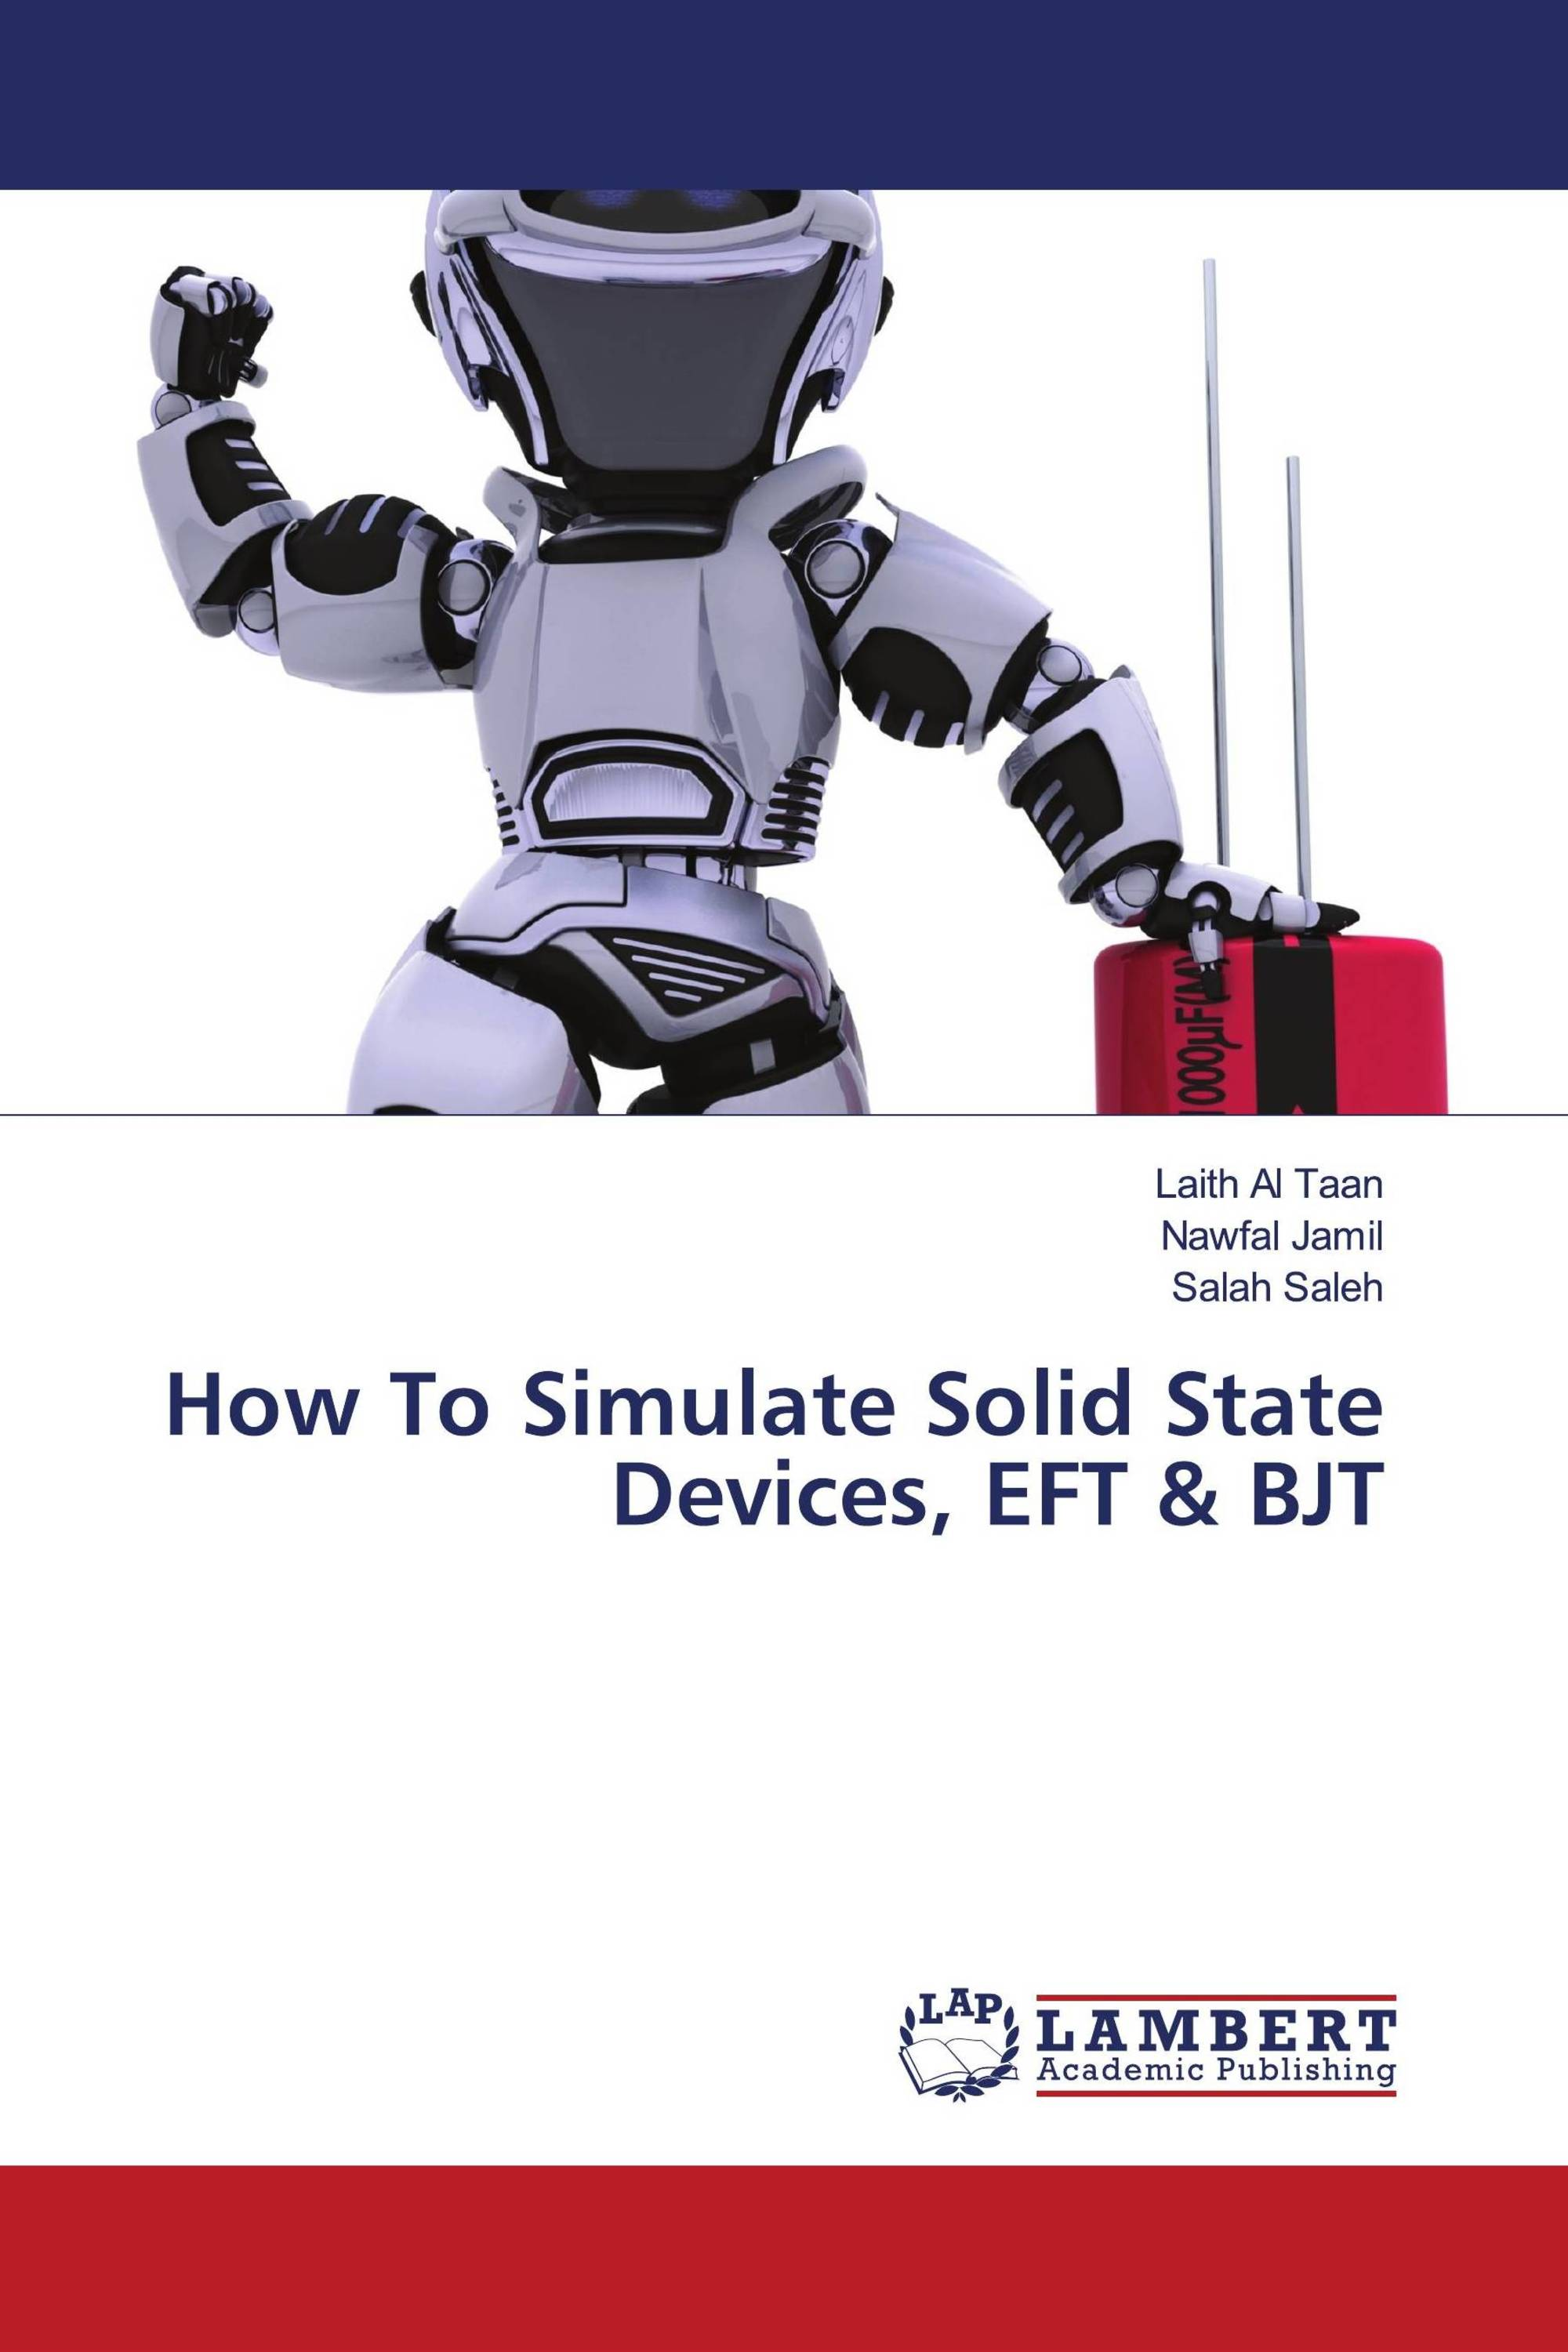 How To Simulate Solid State Devices, EFT & BJT